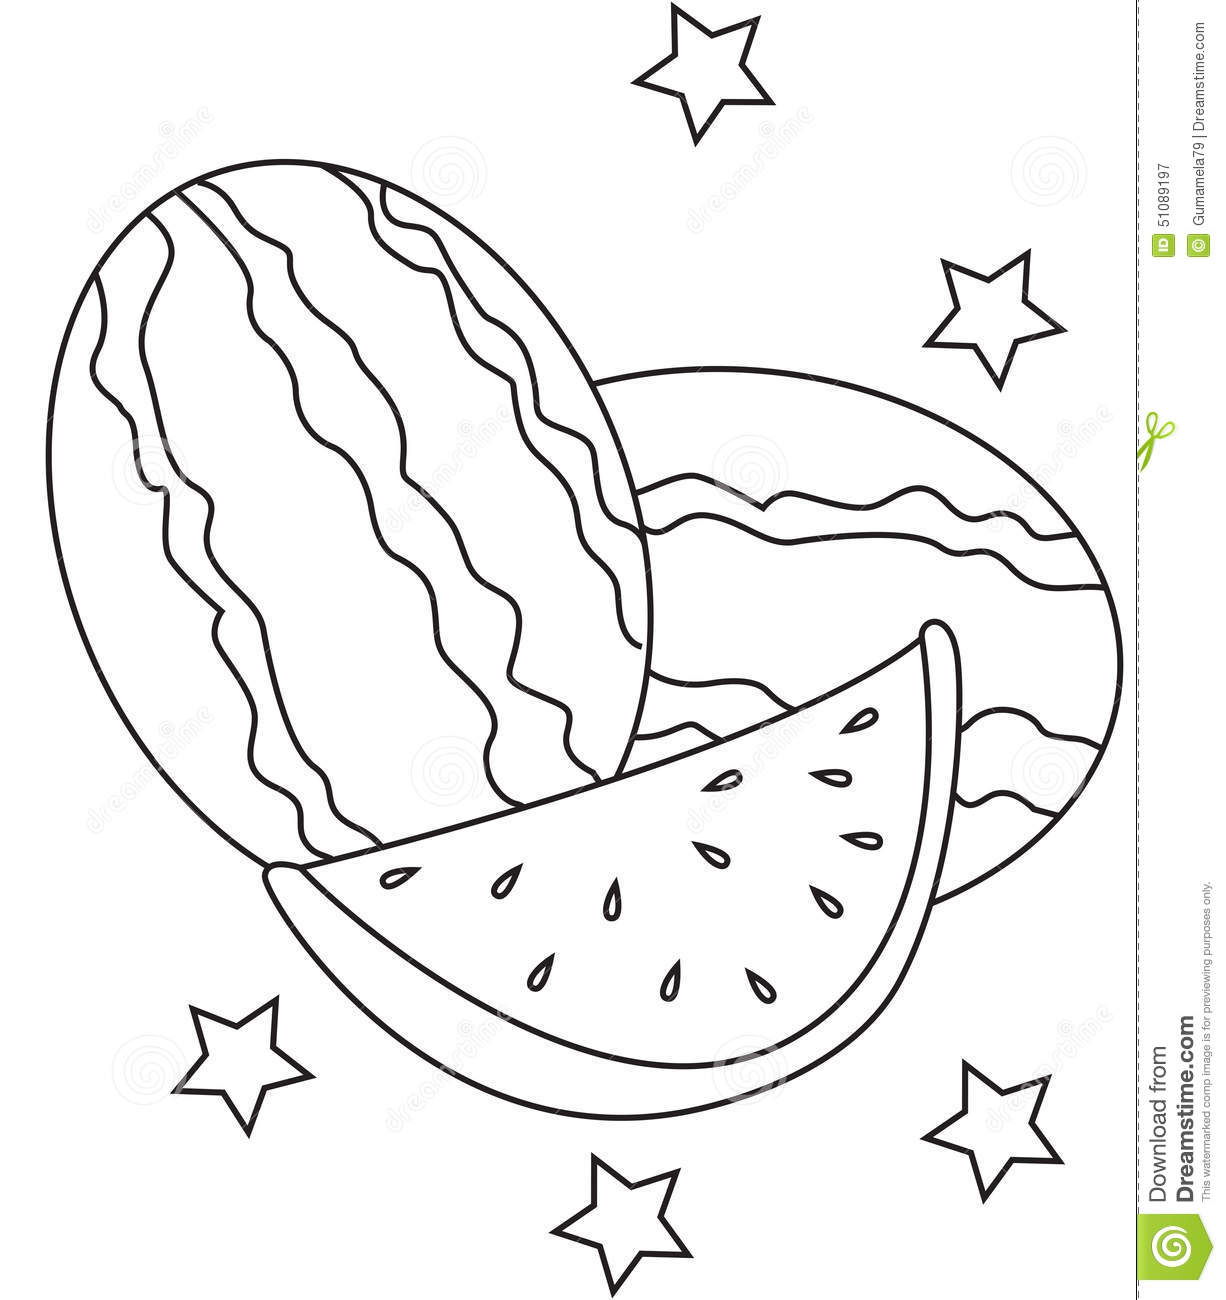 Watermelon Coloring Page Stock Illustration